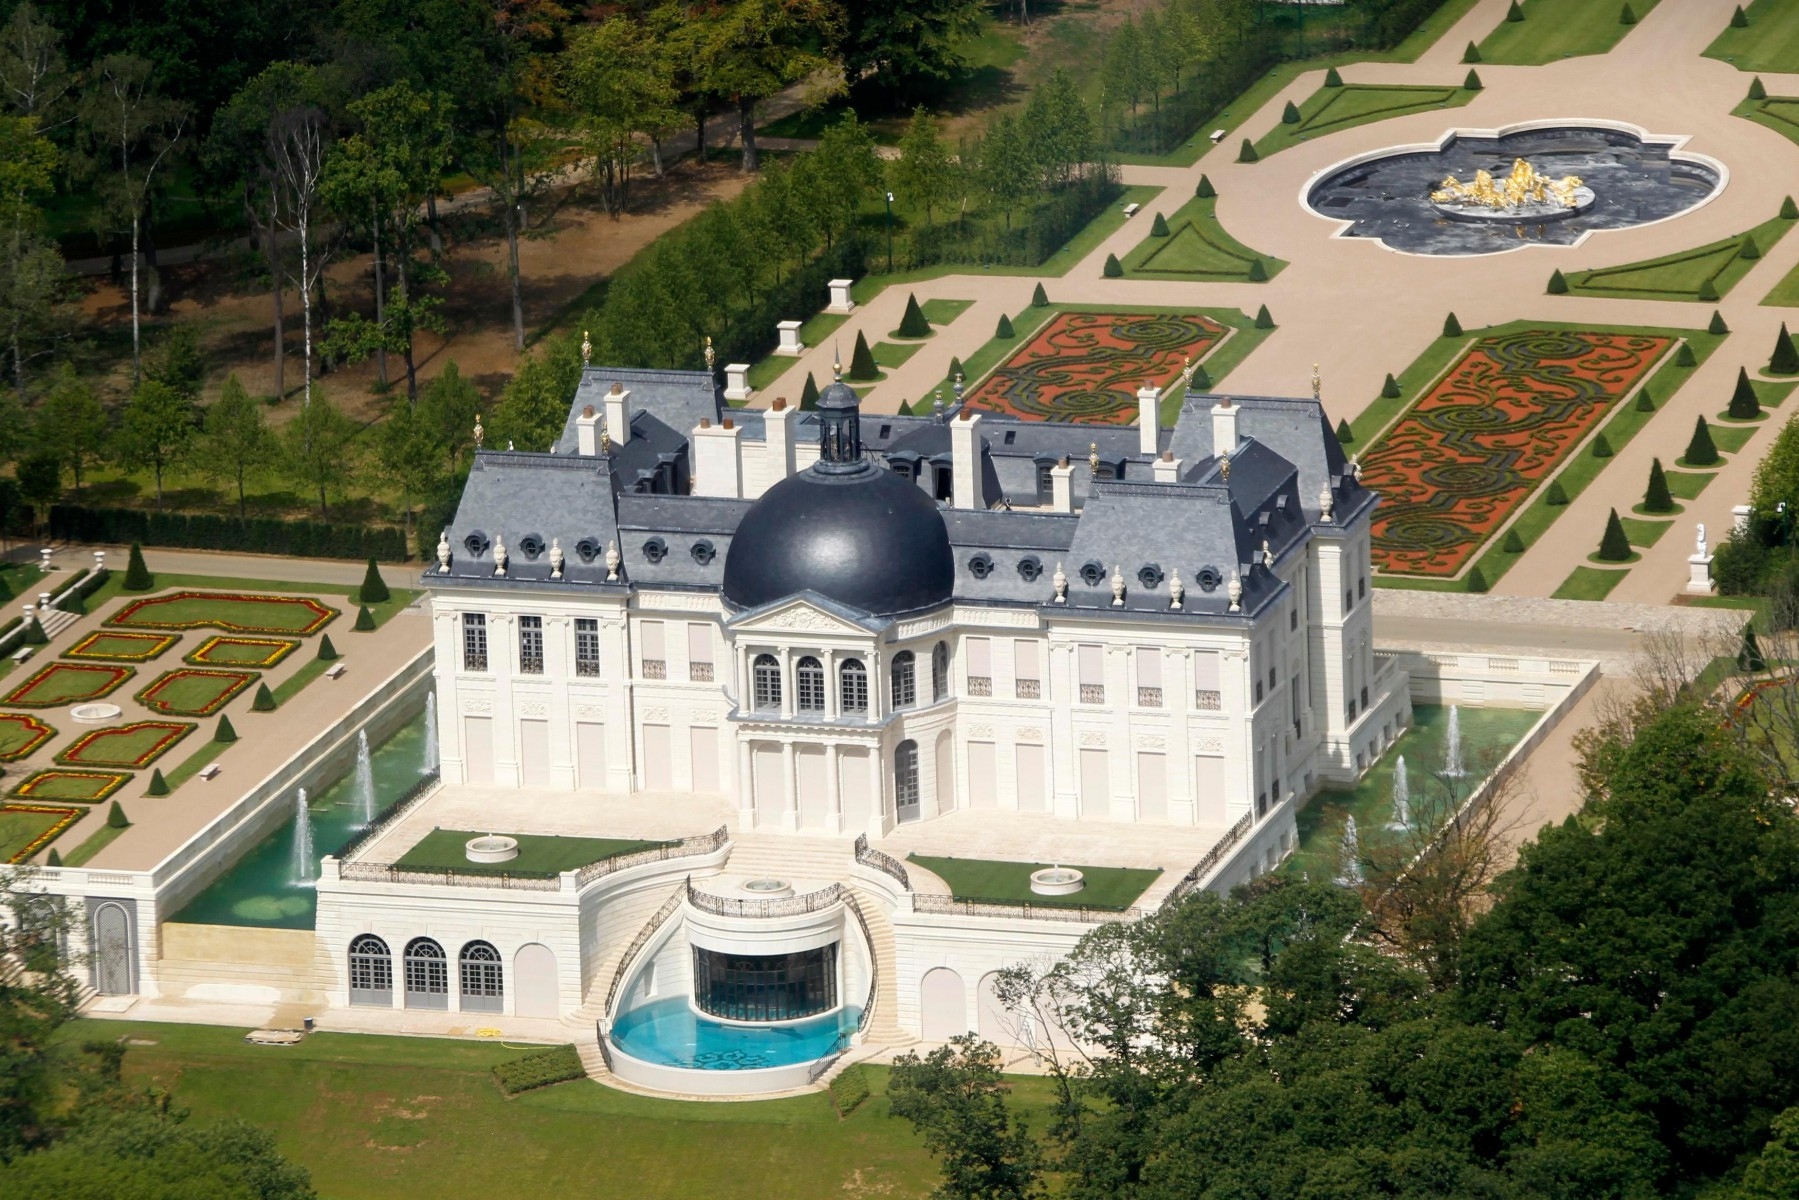 bin Salman owns the world's most expensive home